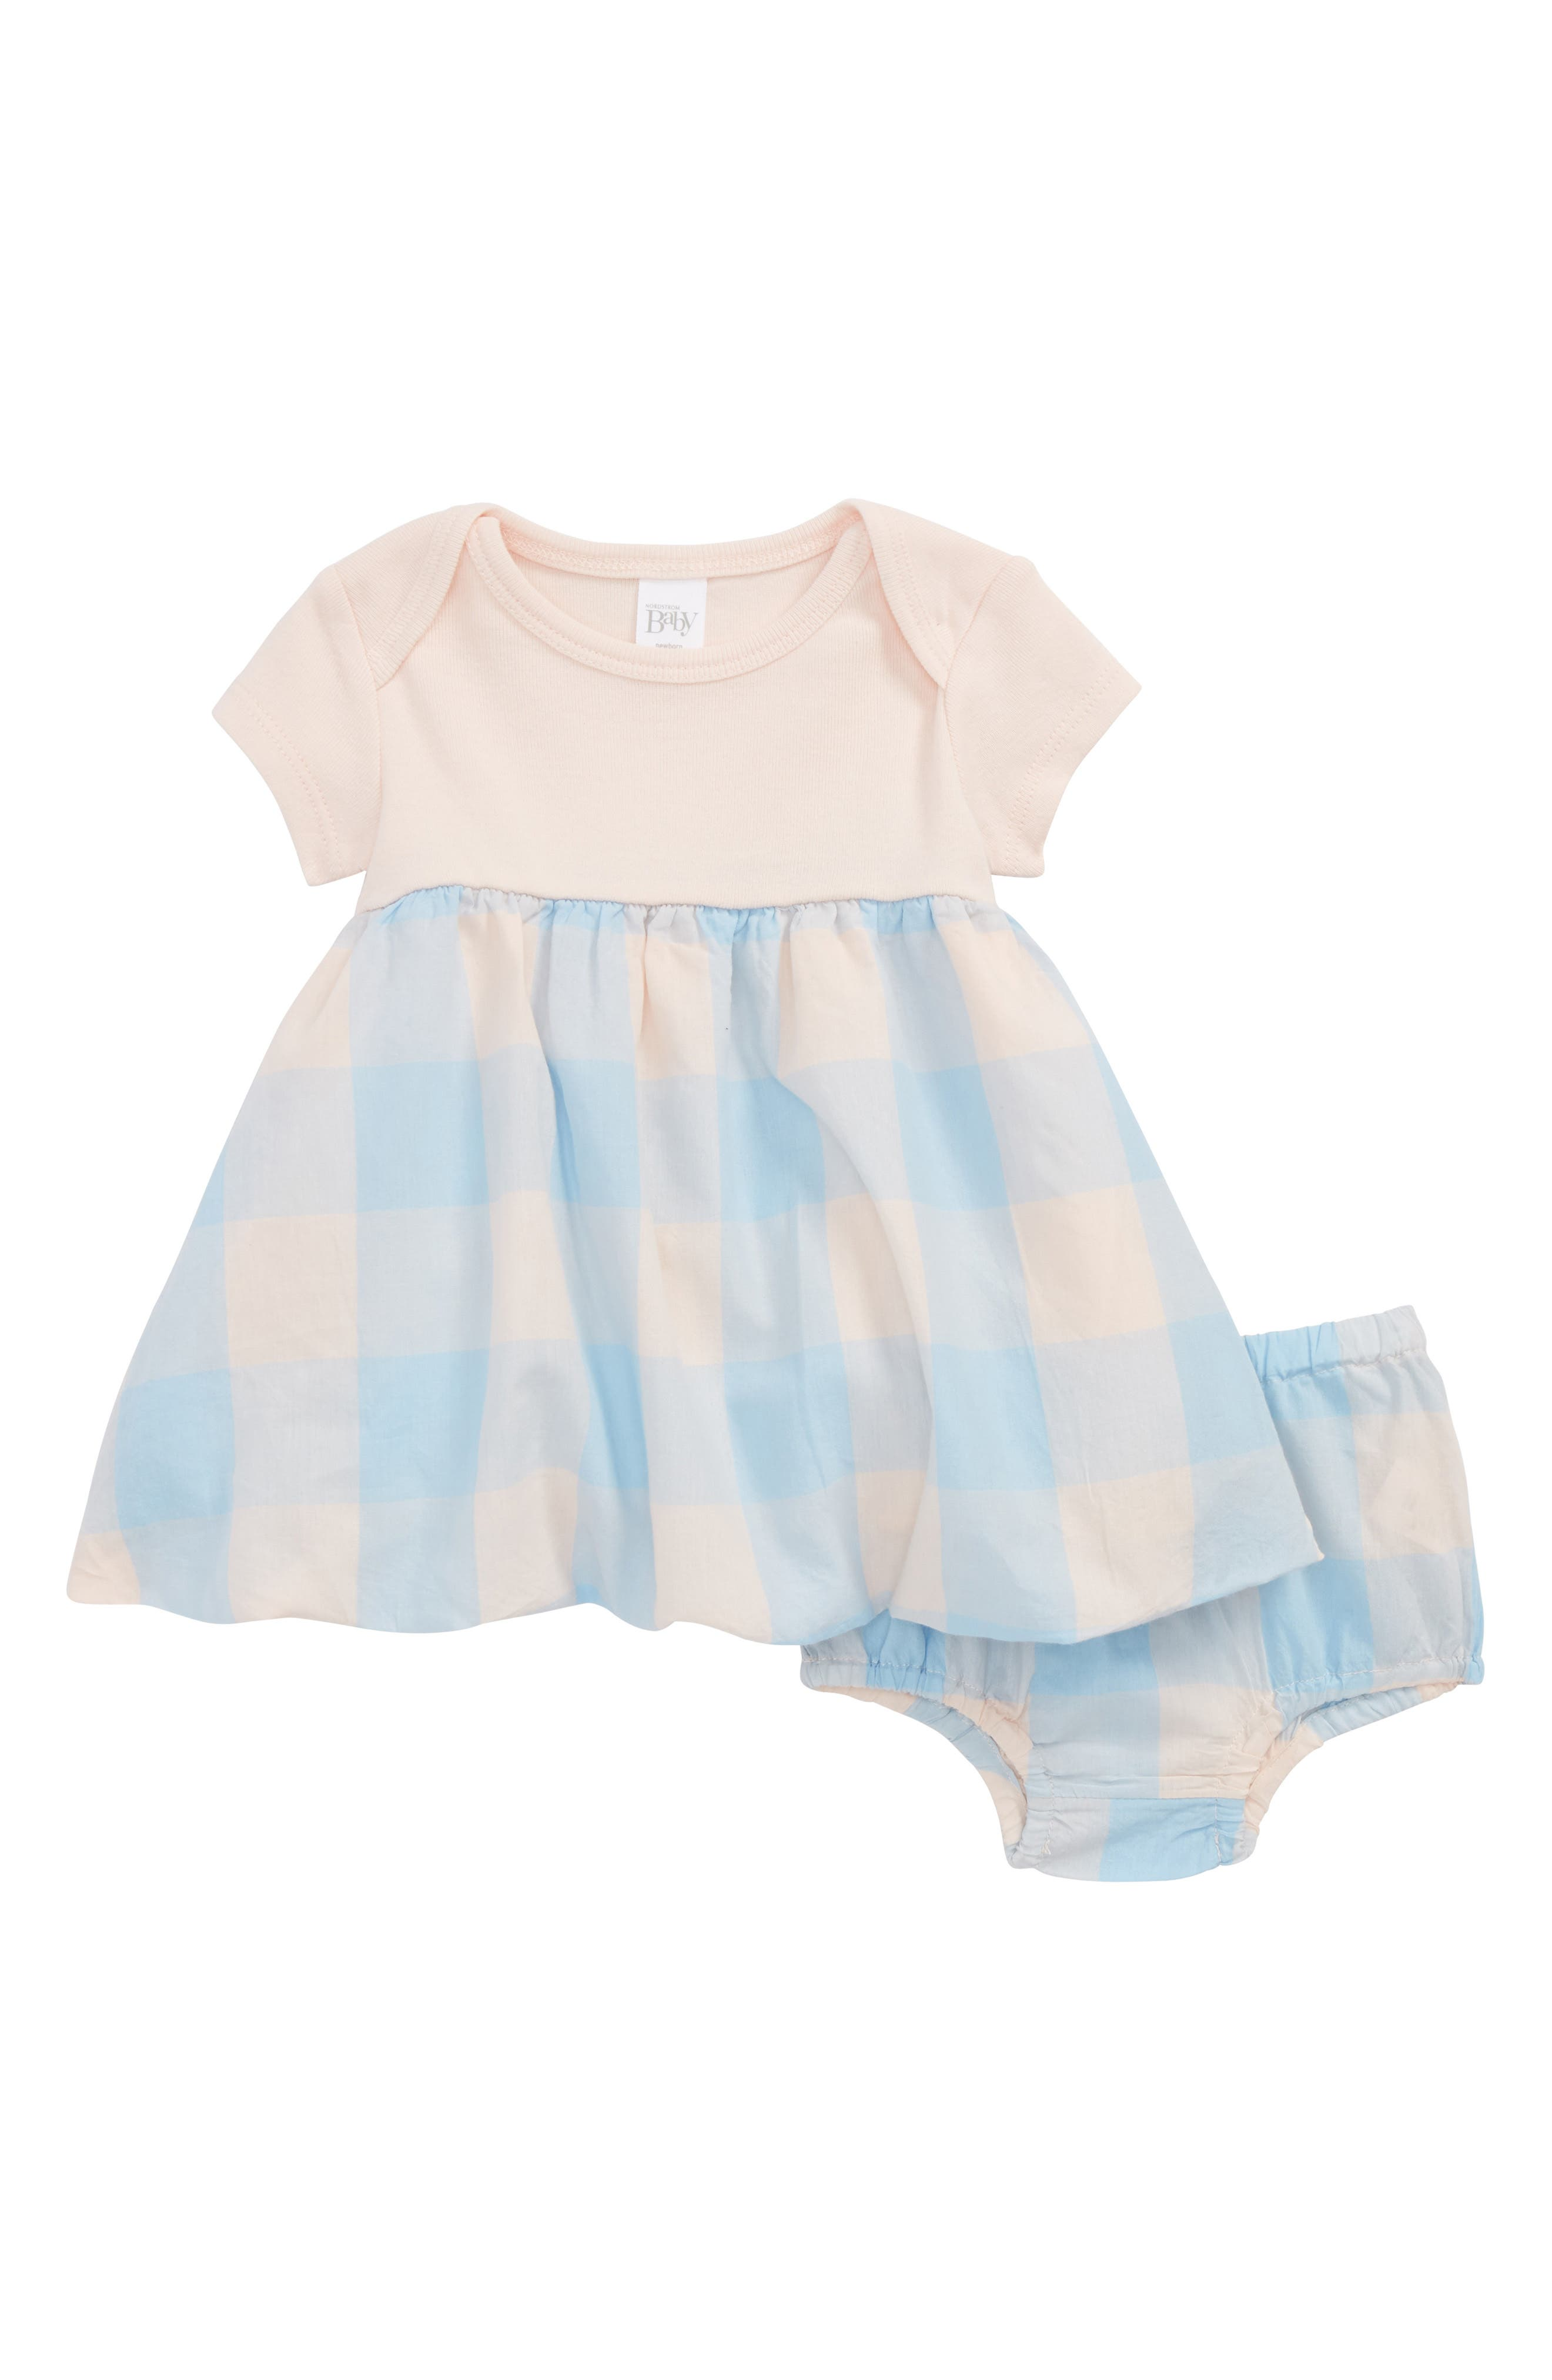 Alternate Image 1 Selected - Nordstrom Baby Bubble Dress (Baby Girls)